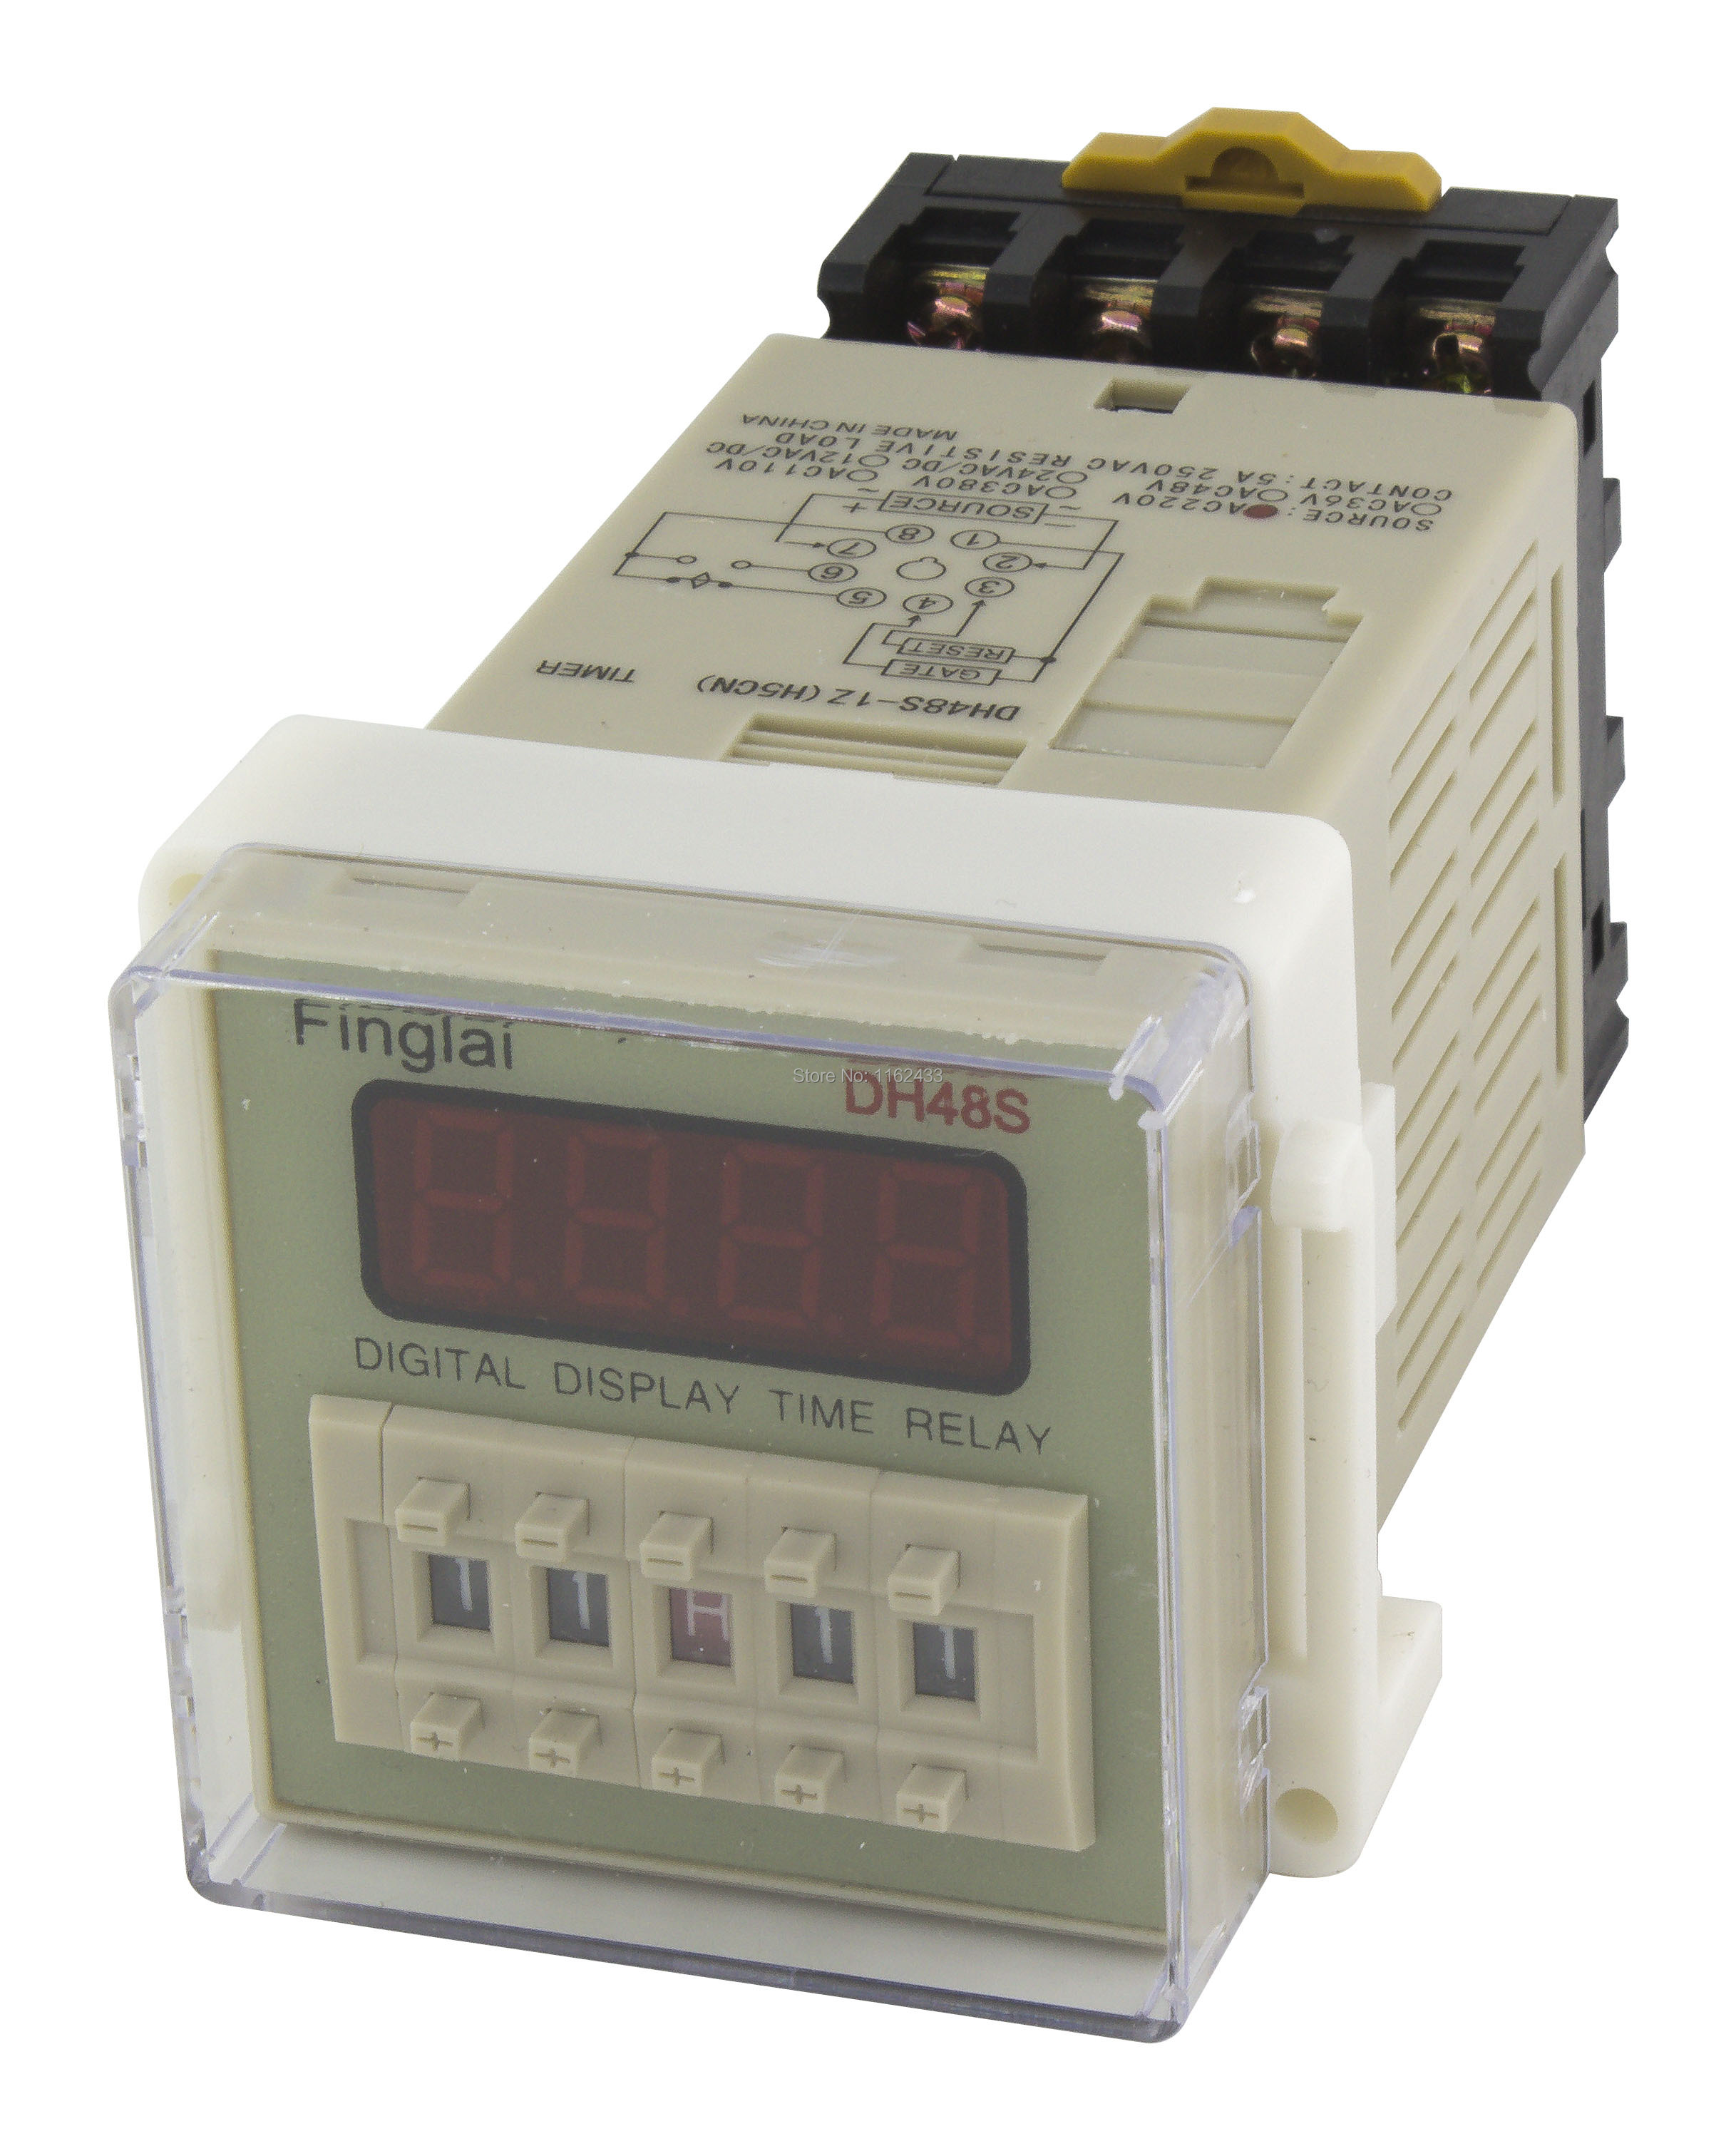 DH48S-1Z on delay SPDT time relay AC 220V 110V AC/DC 24V 12V with socket DH48S series delay timer with baseDH48S-1Z on delay SPDT time relay AC 220V 110V AC/DC 24V 12V with socket DH48S series delay timer with base